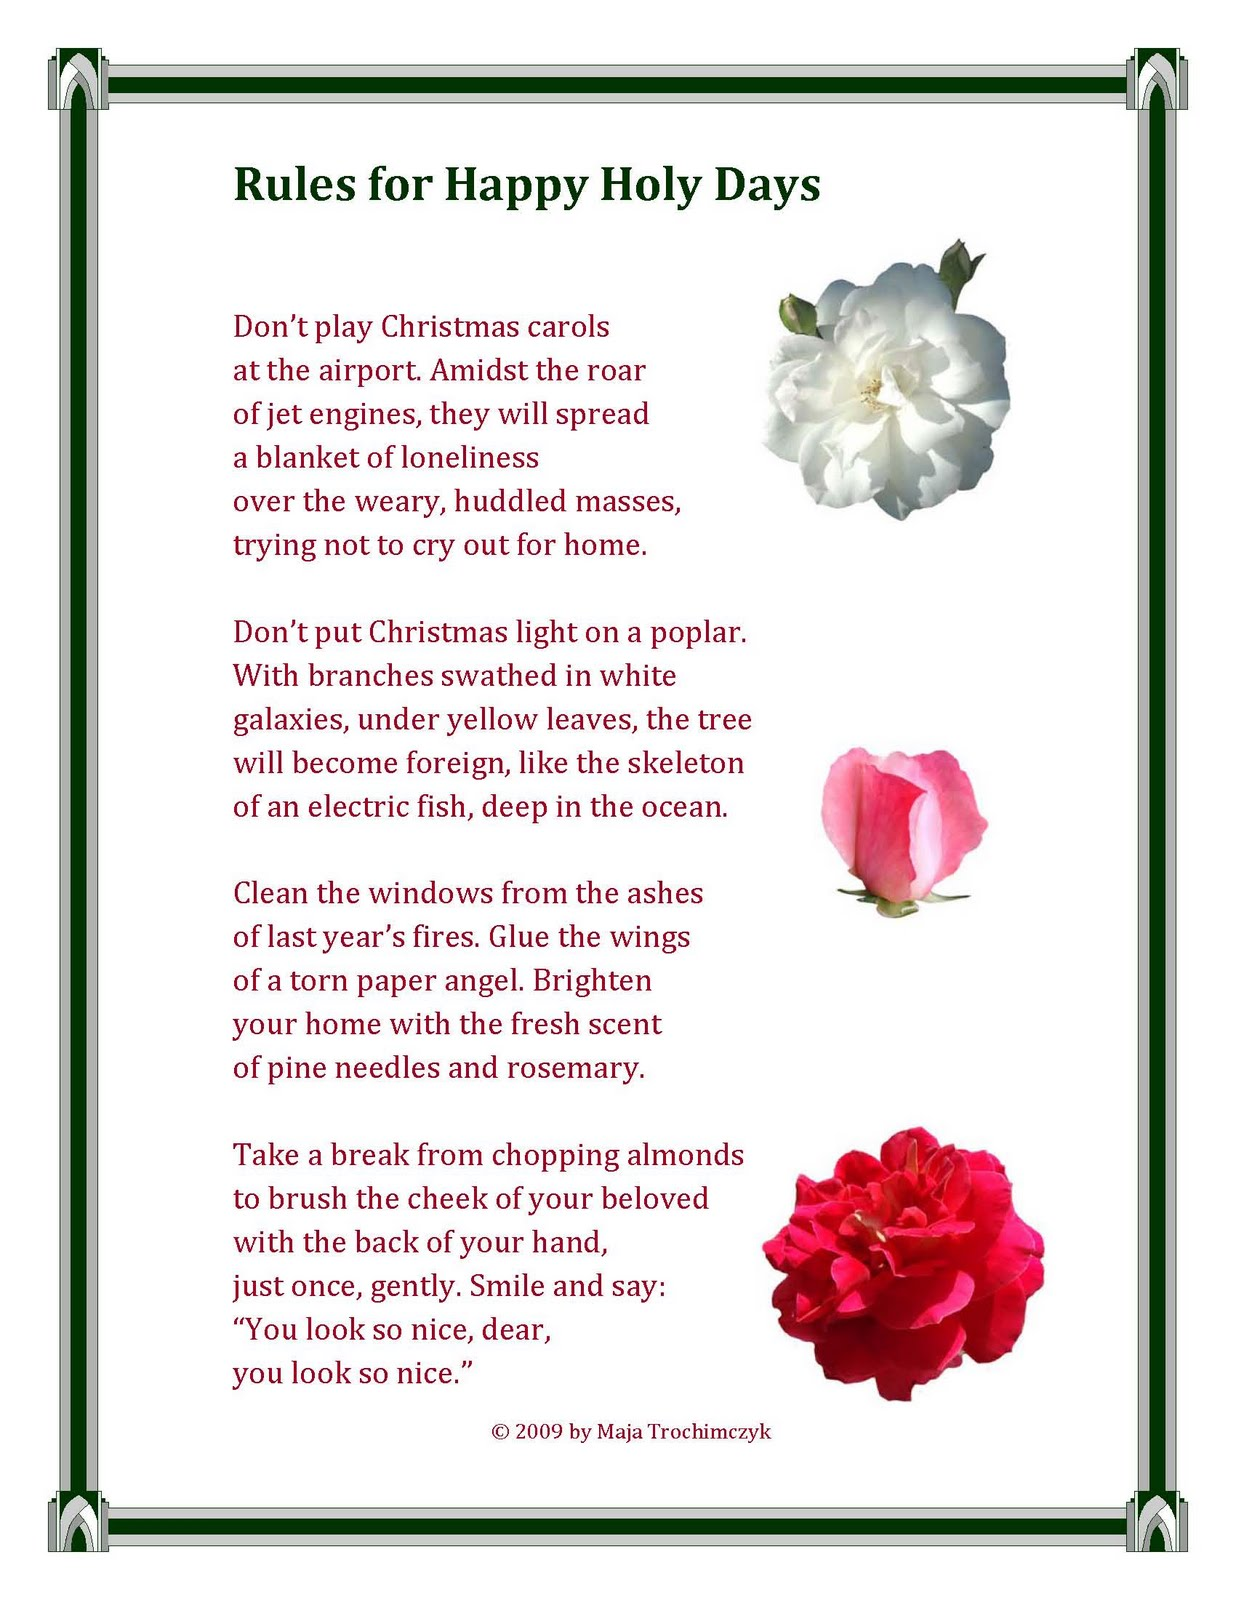 Christmas poems for church programs - Rules For Happy Holy Days Poem By Maja Trochimczyk